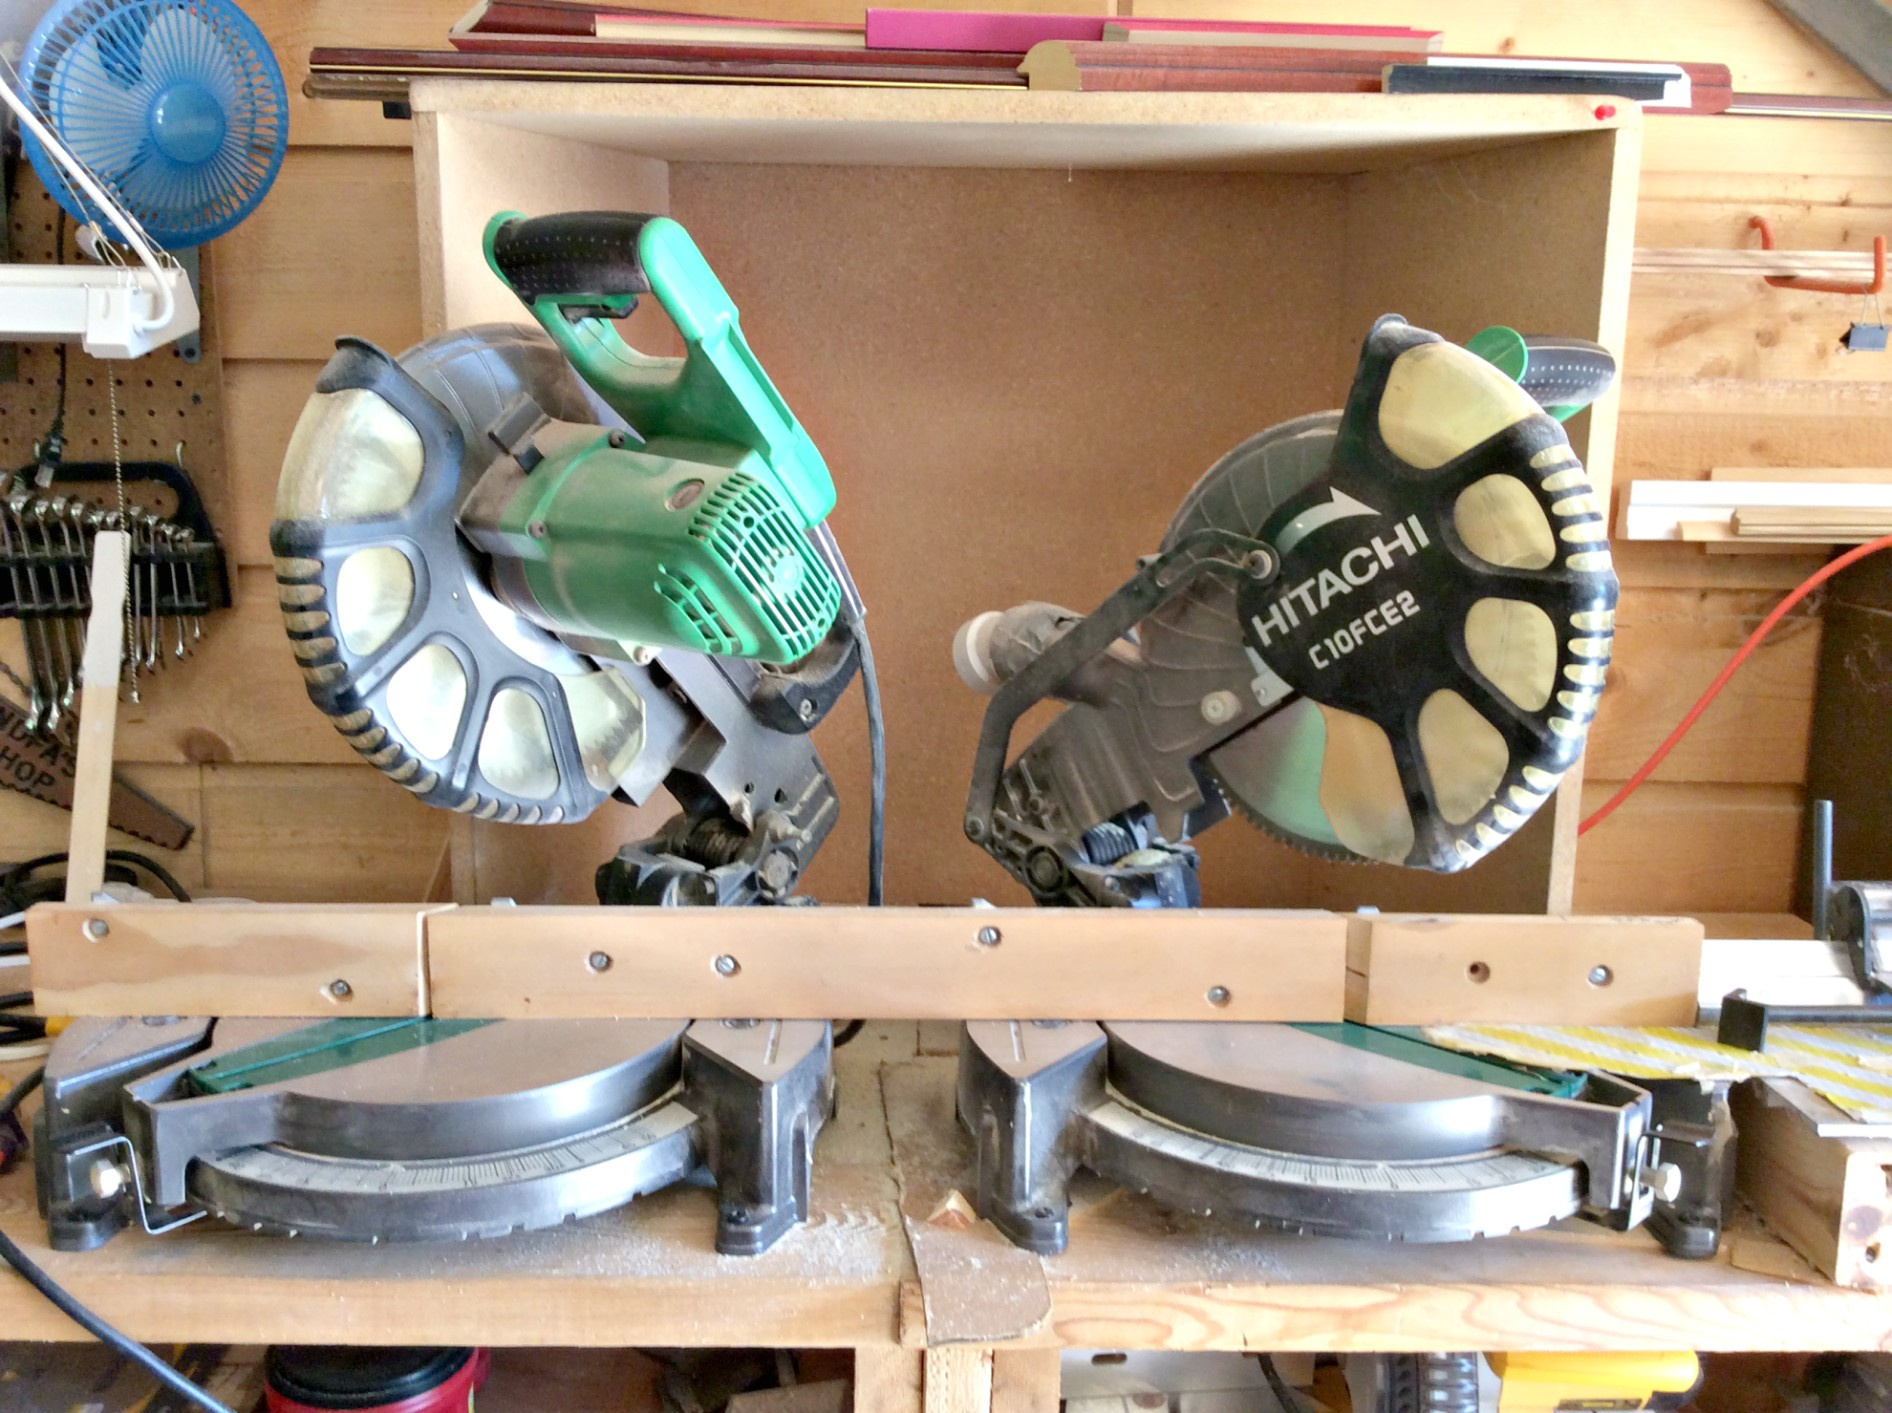 Double Hitachi Single Bevel Compound Miter Saw w/ Measuring Grids (used)  Item # UFE-3130